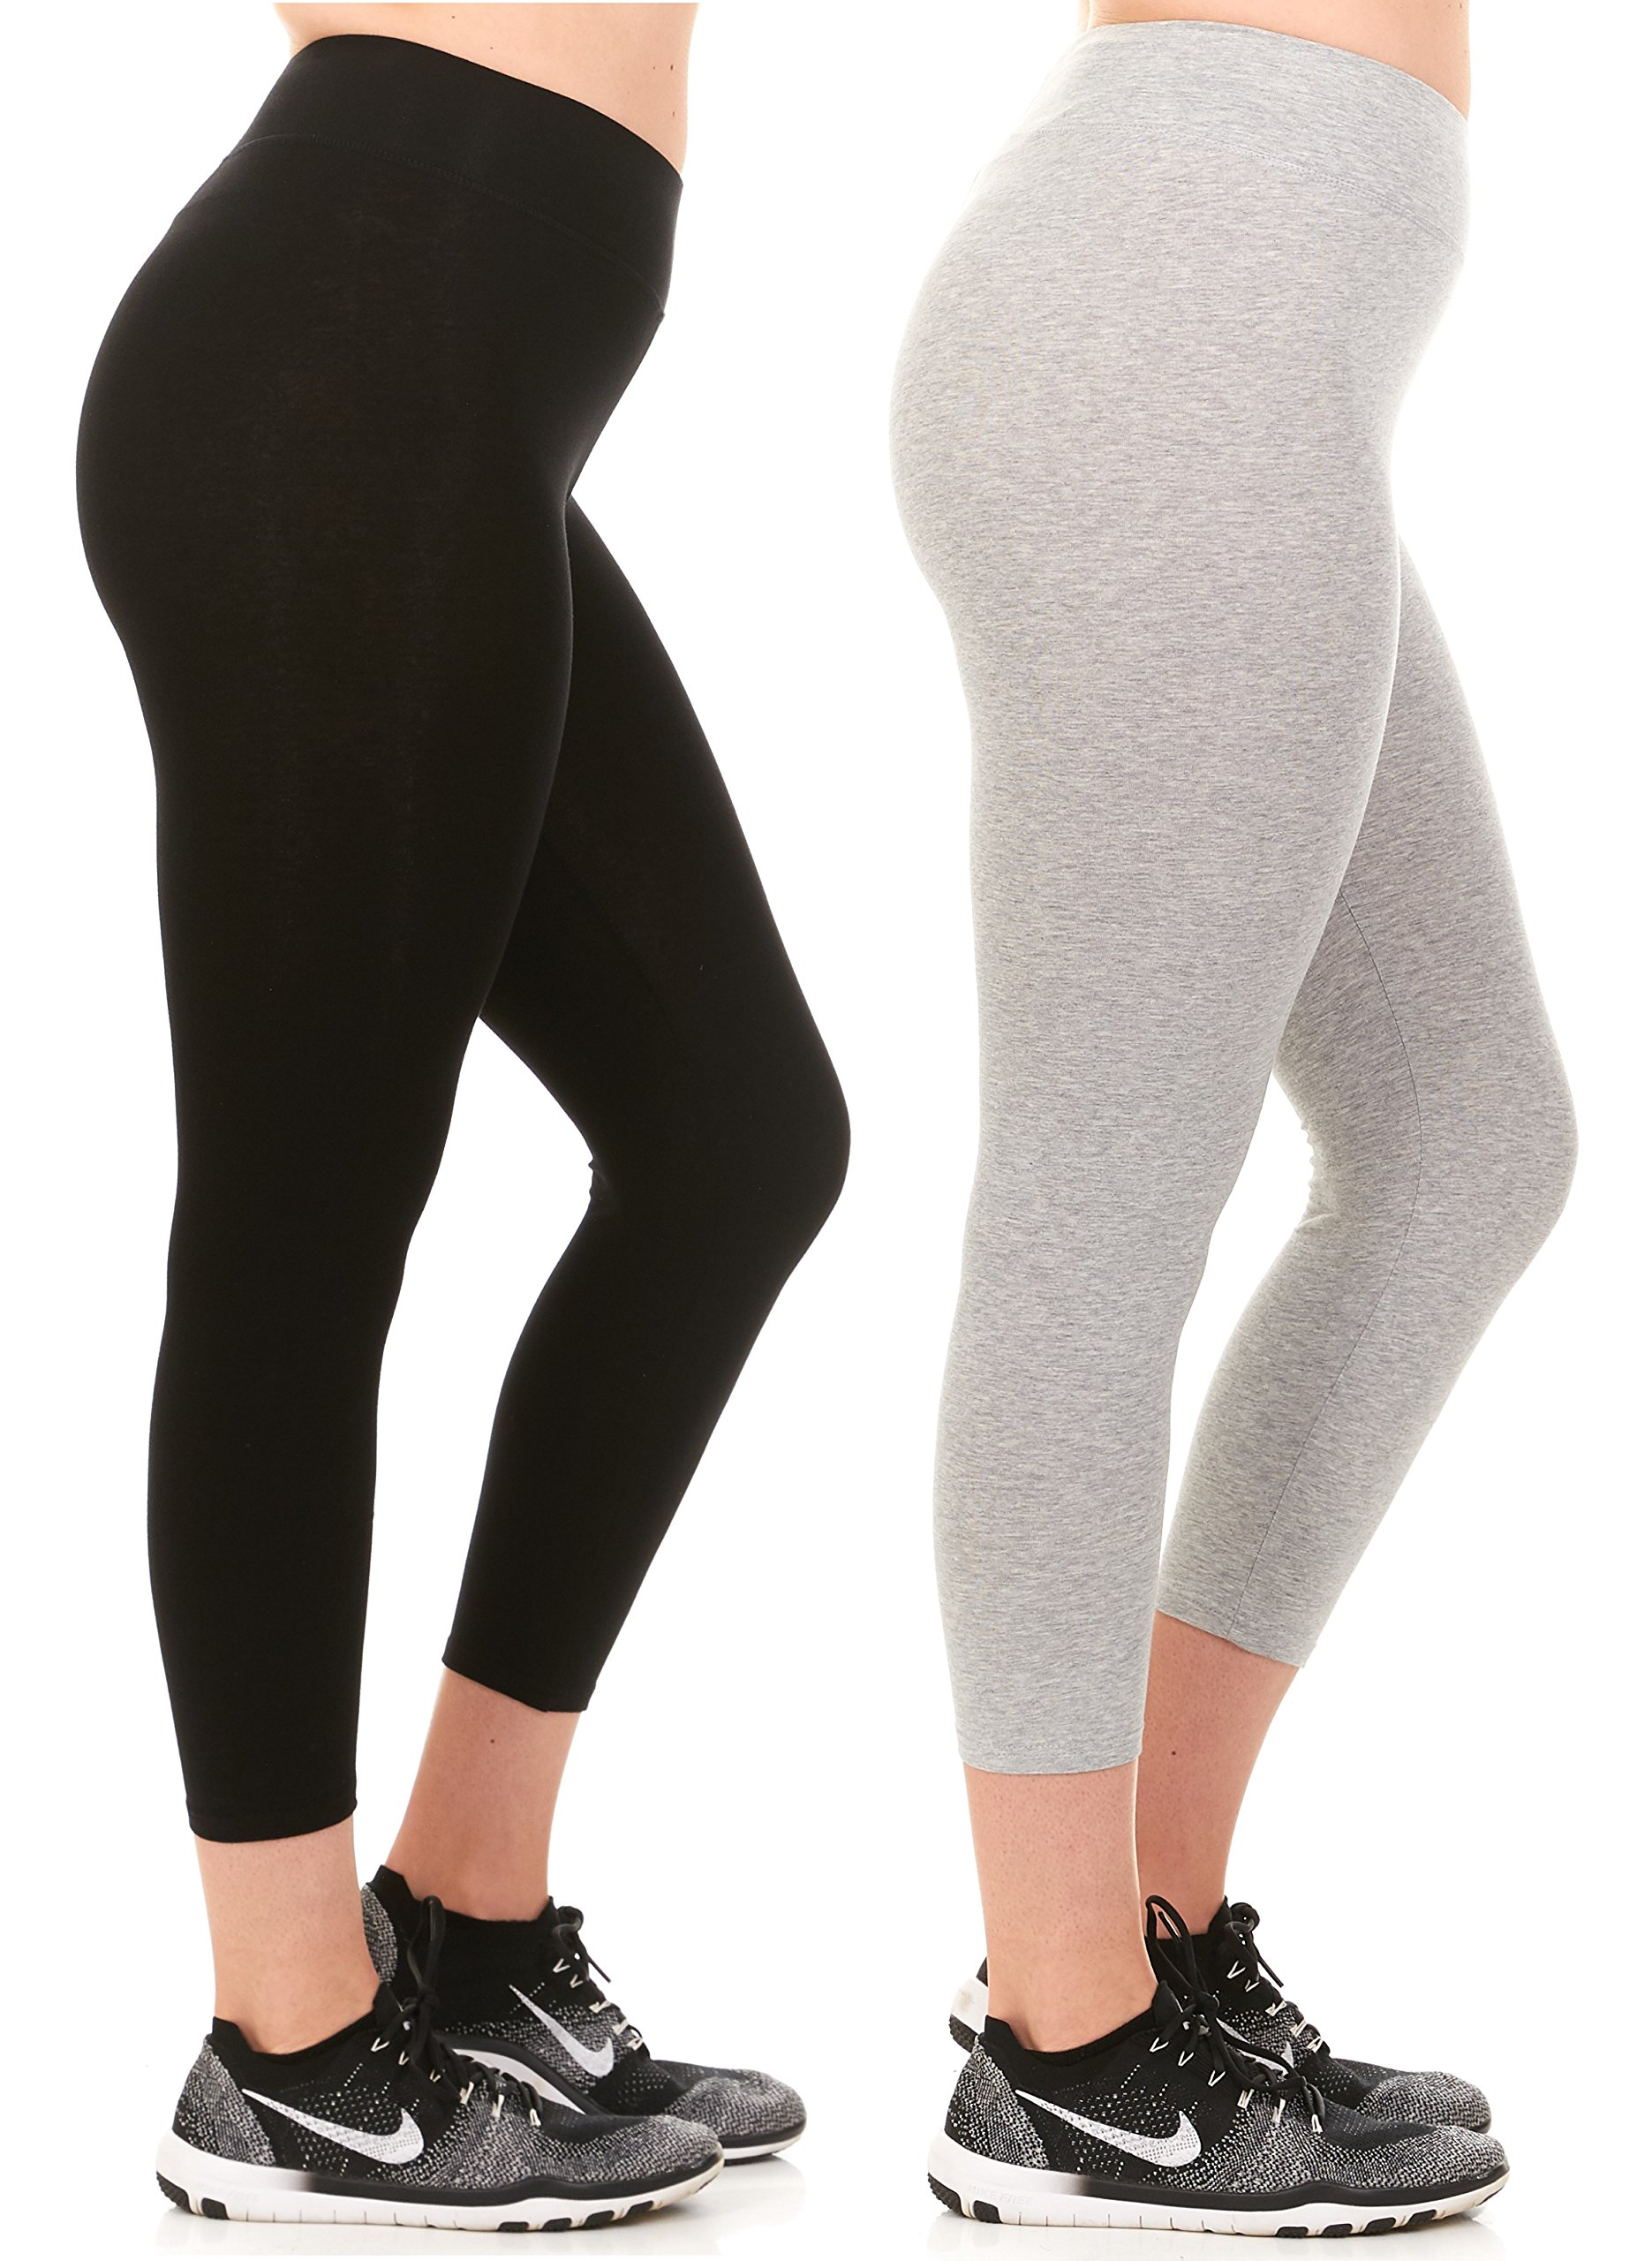 Unique Styles Womens Cotton Capri Yoga Pants Leggings in Regular and Plus Sizes